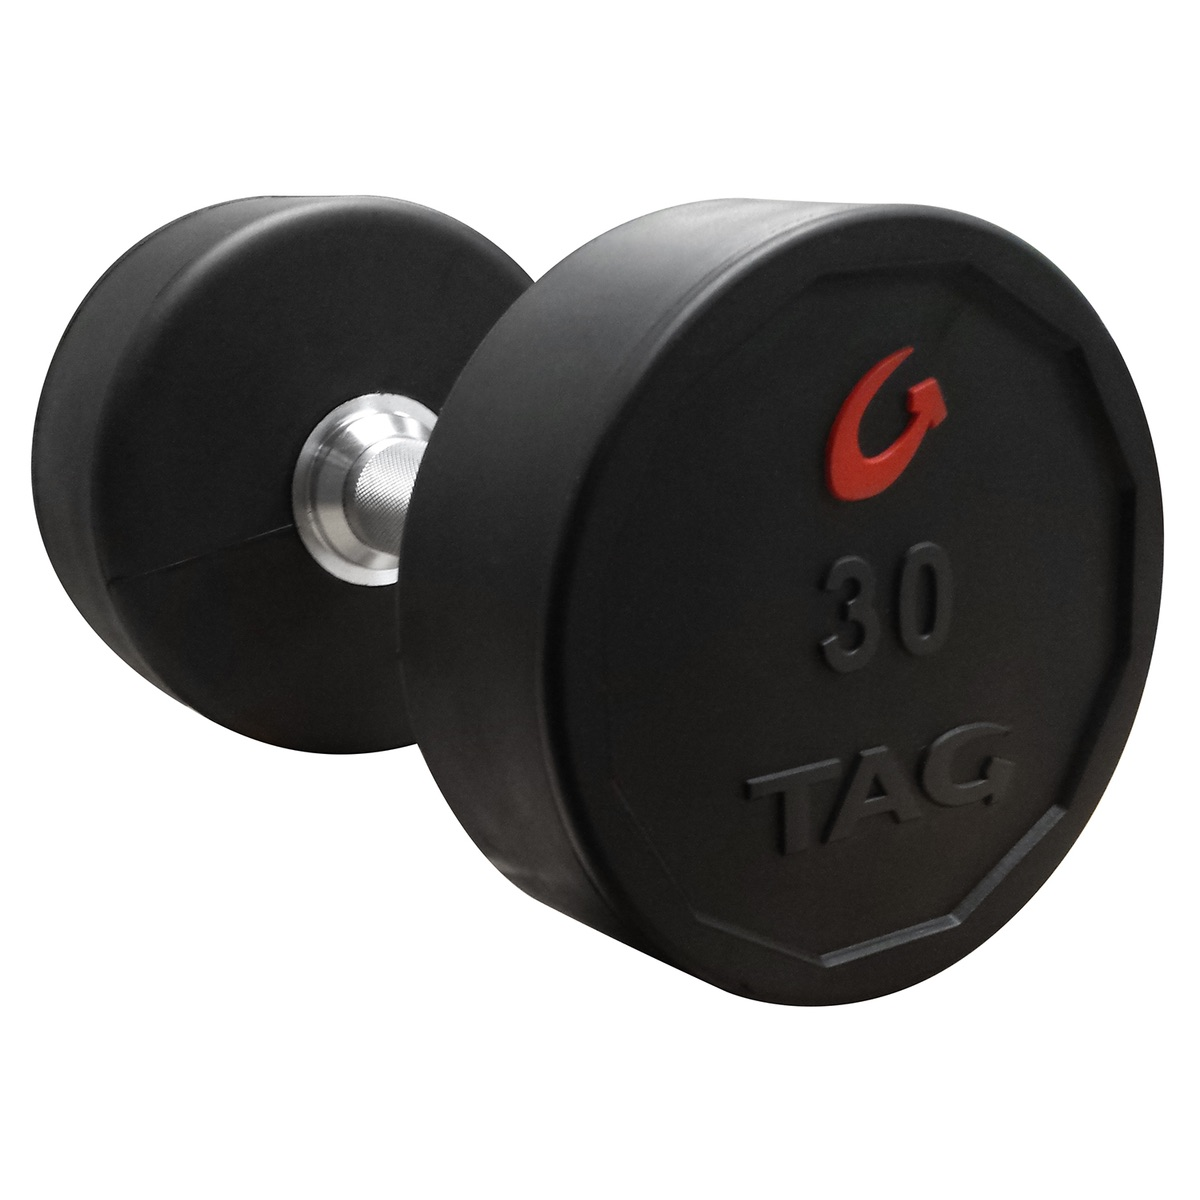 Tag Rubber Dumbbells Set Tag Fitness